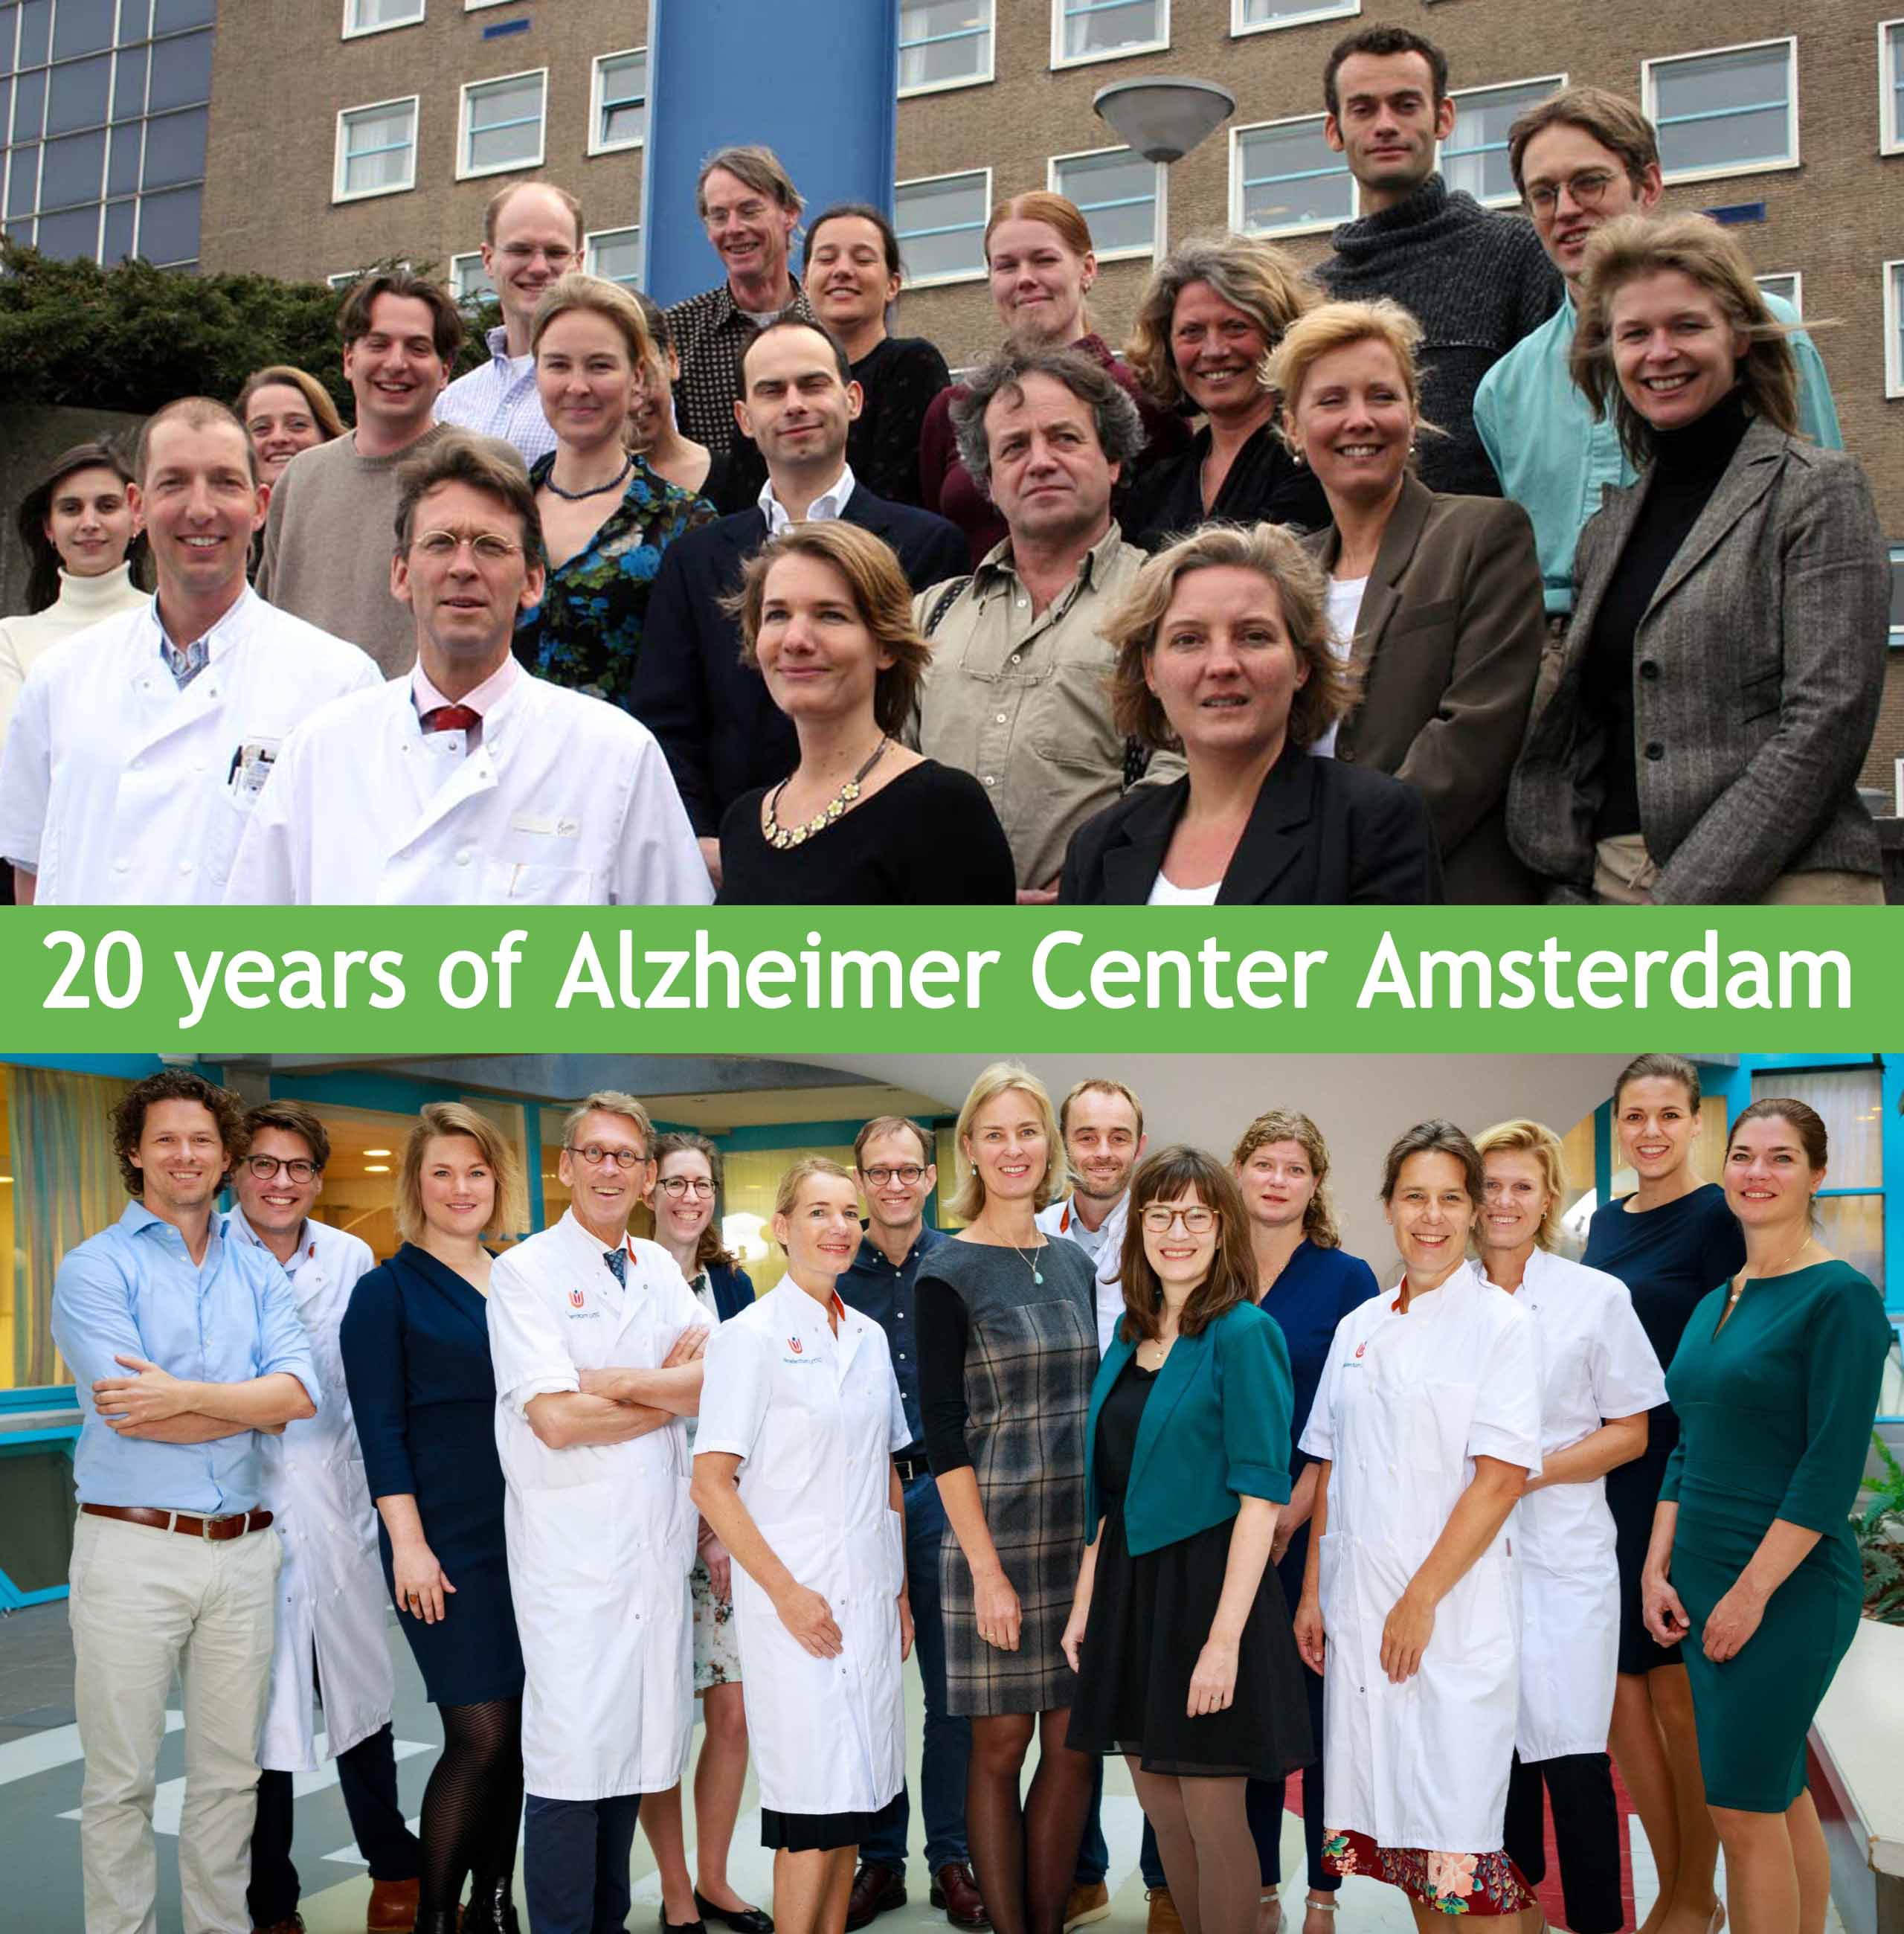 An old photo of 2005 and a photo of 2019 of the researchers at the Alzheimer Center Amsterdam